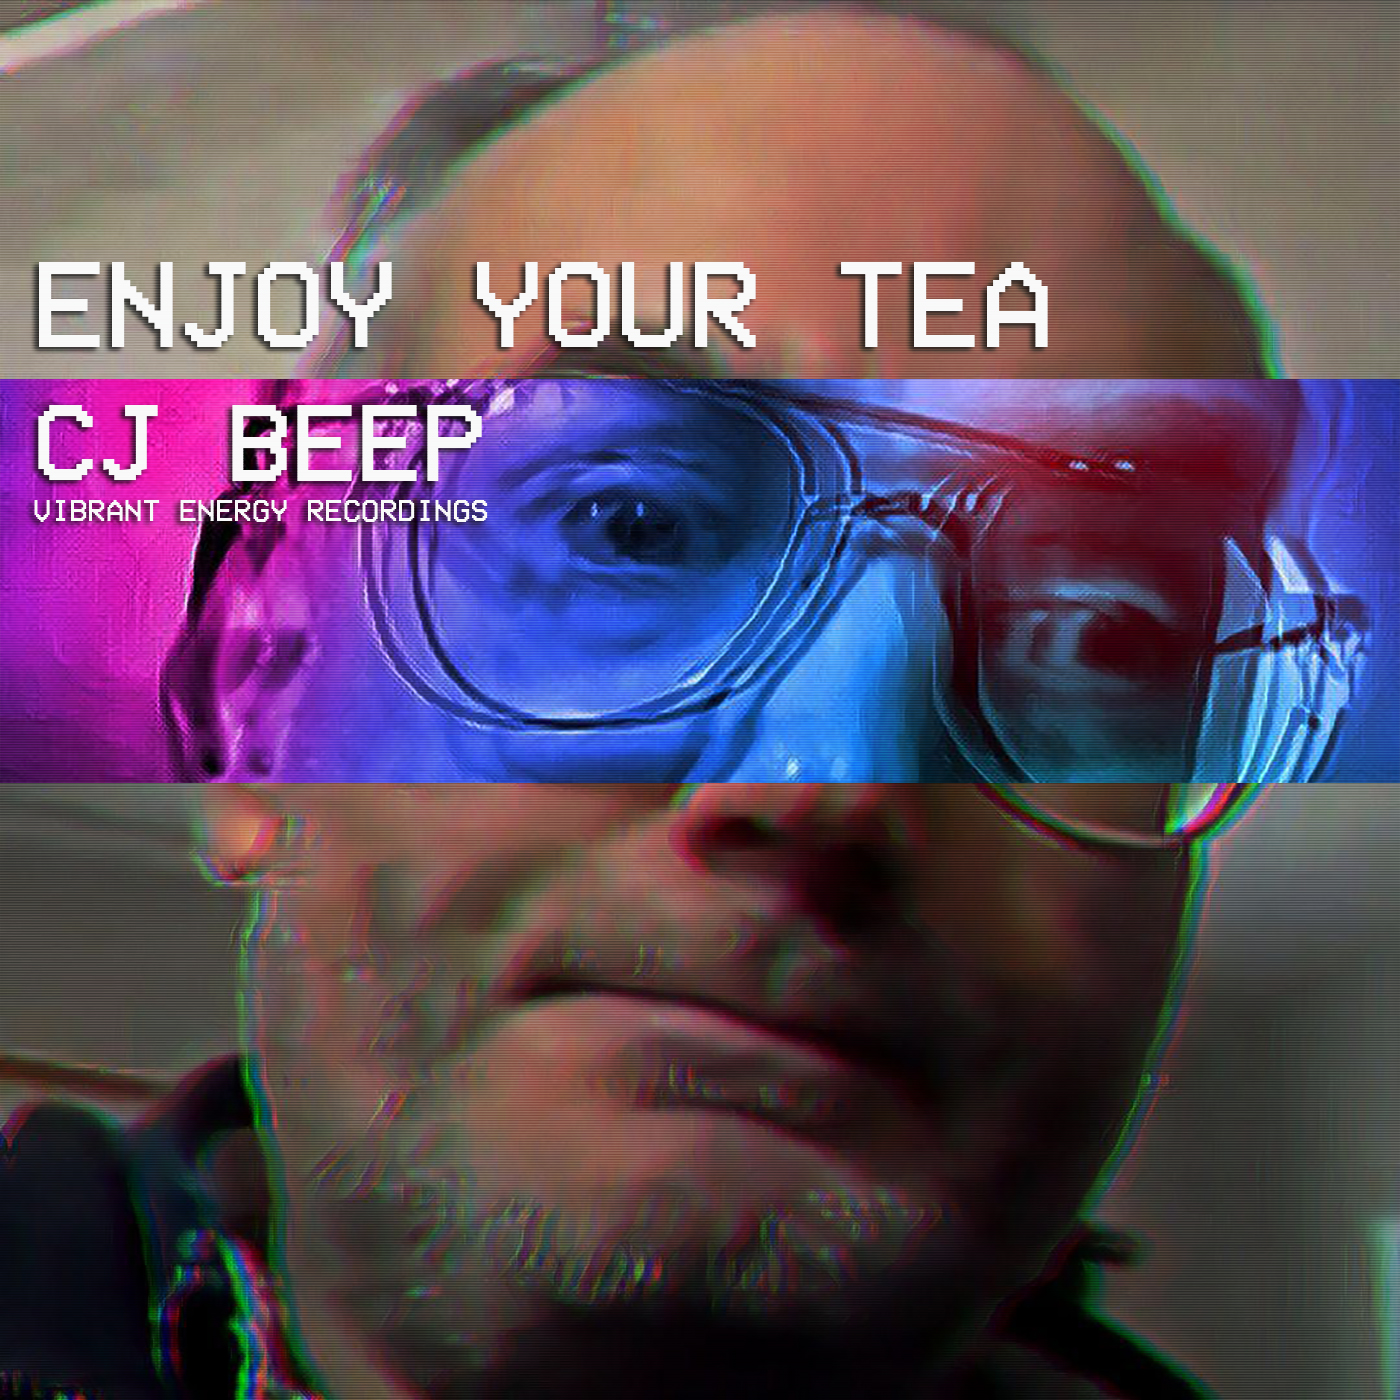 enloy your tea